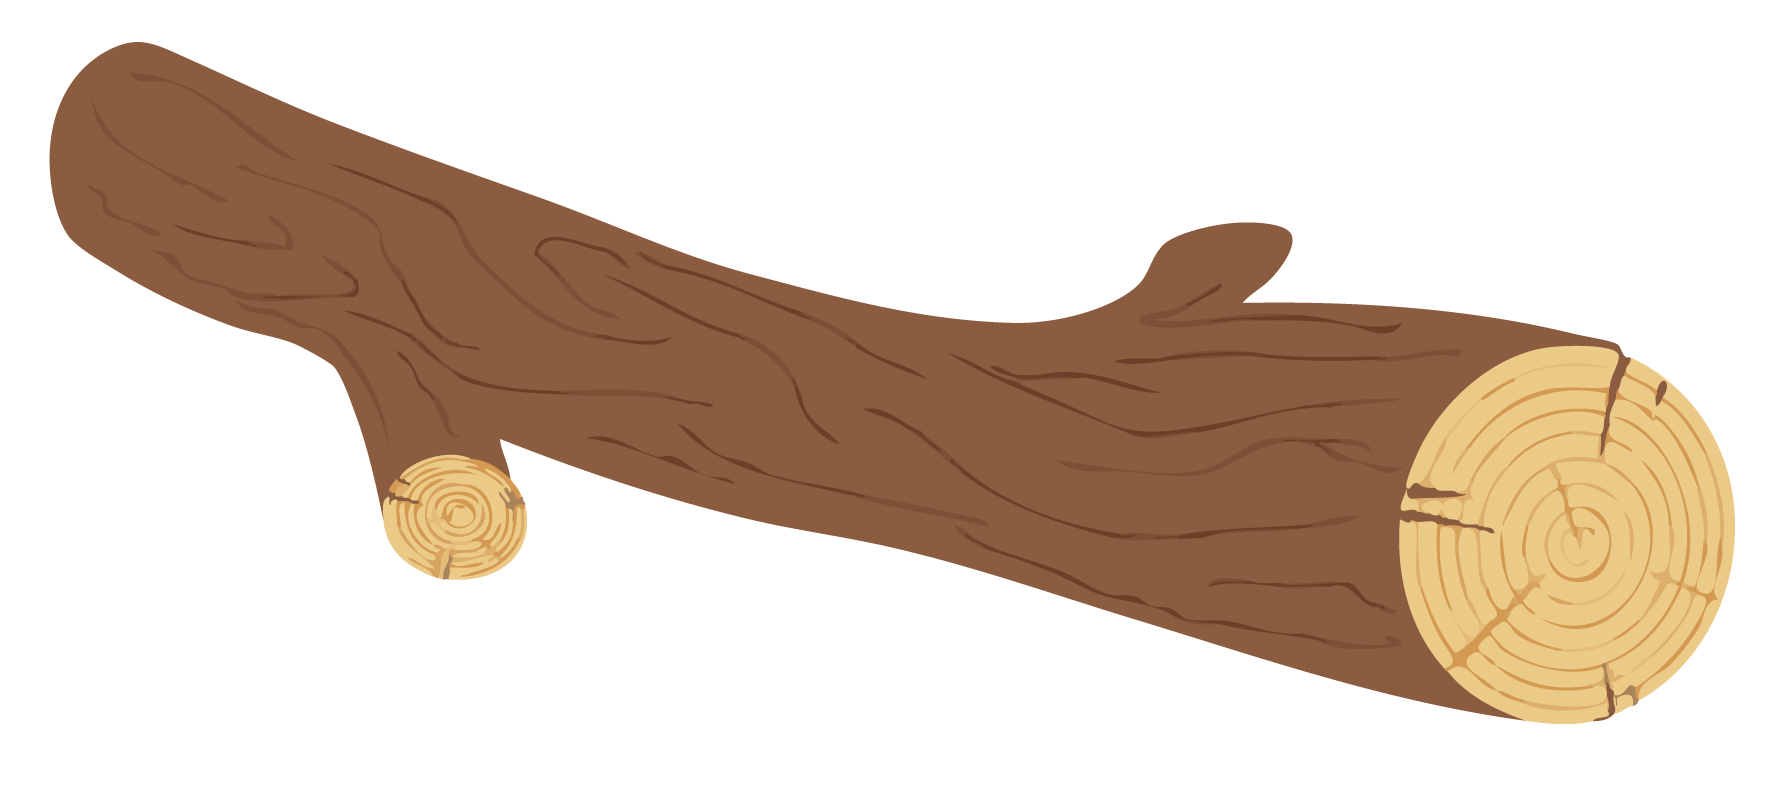 Log clipart suggest